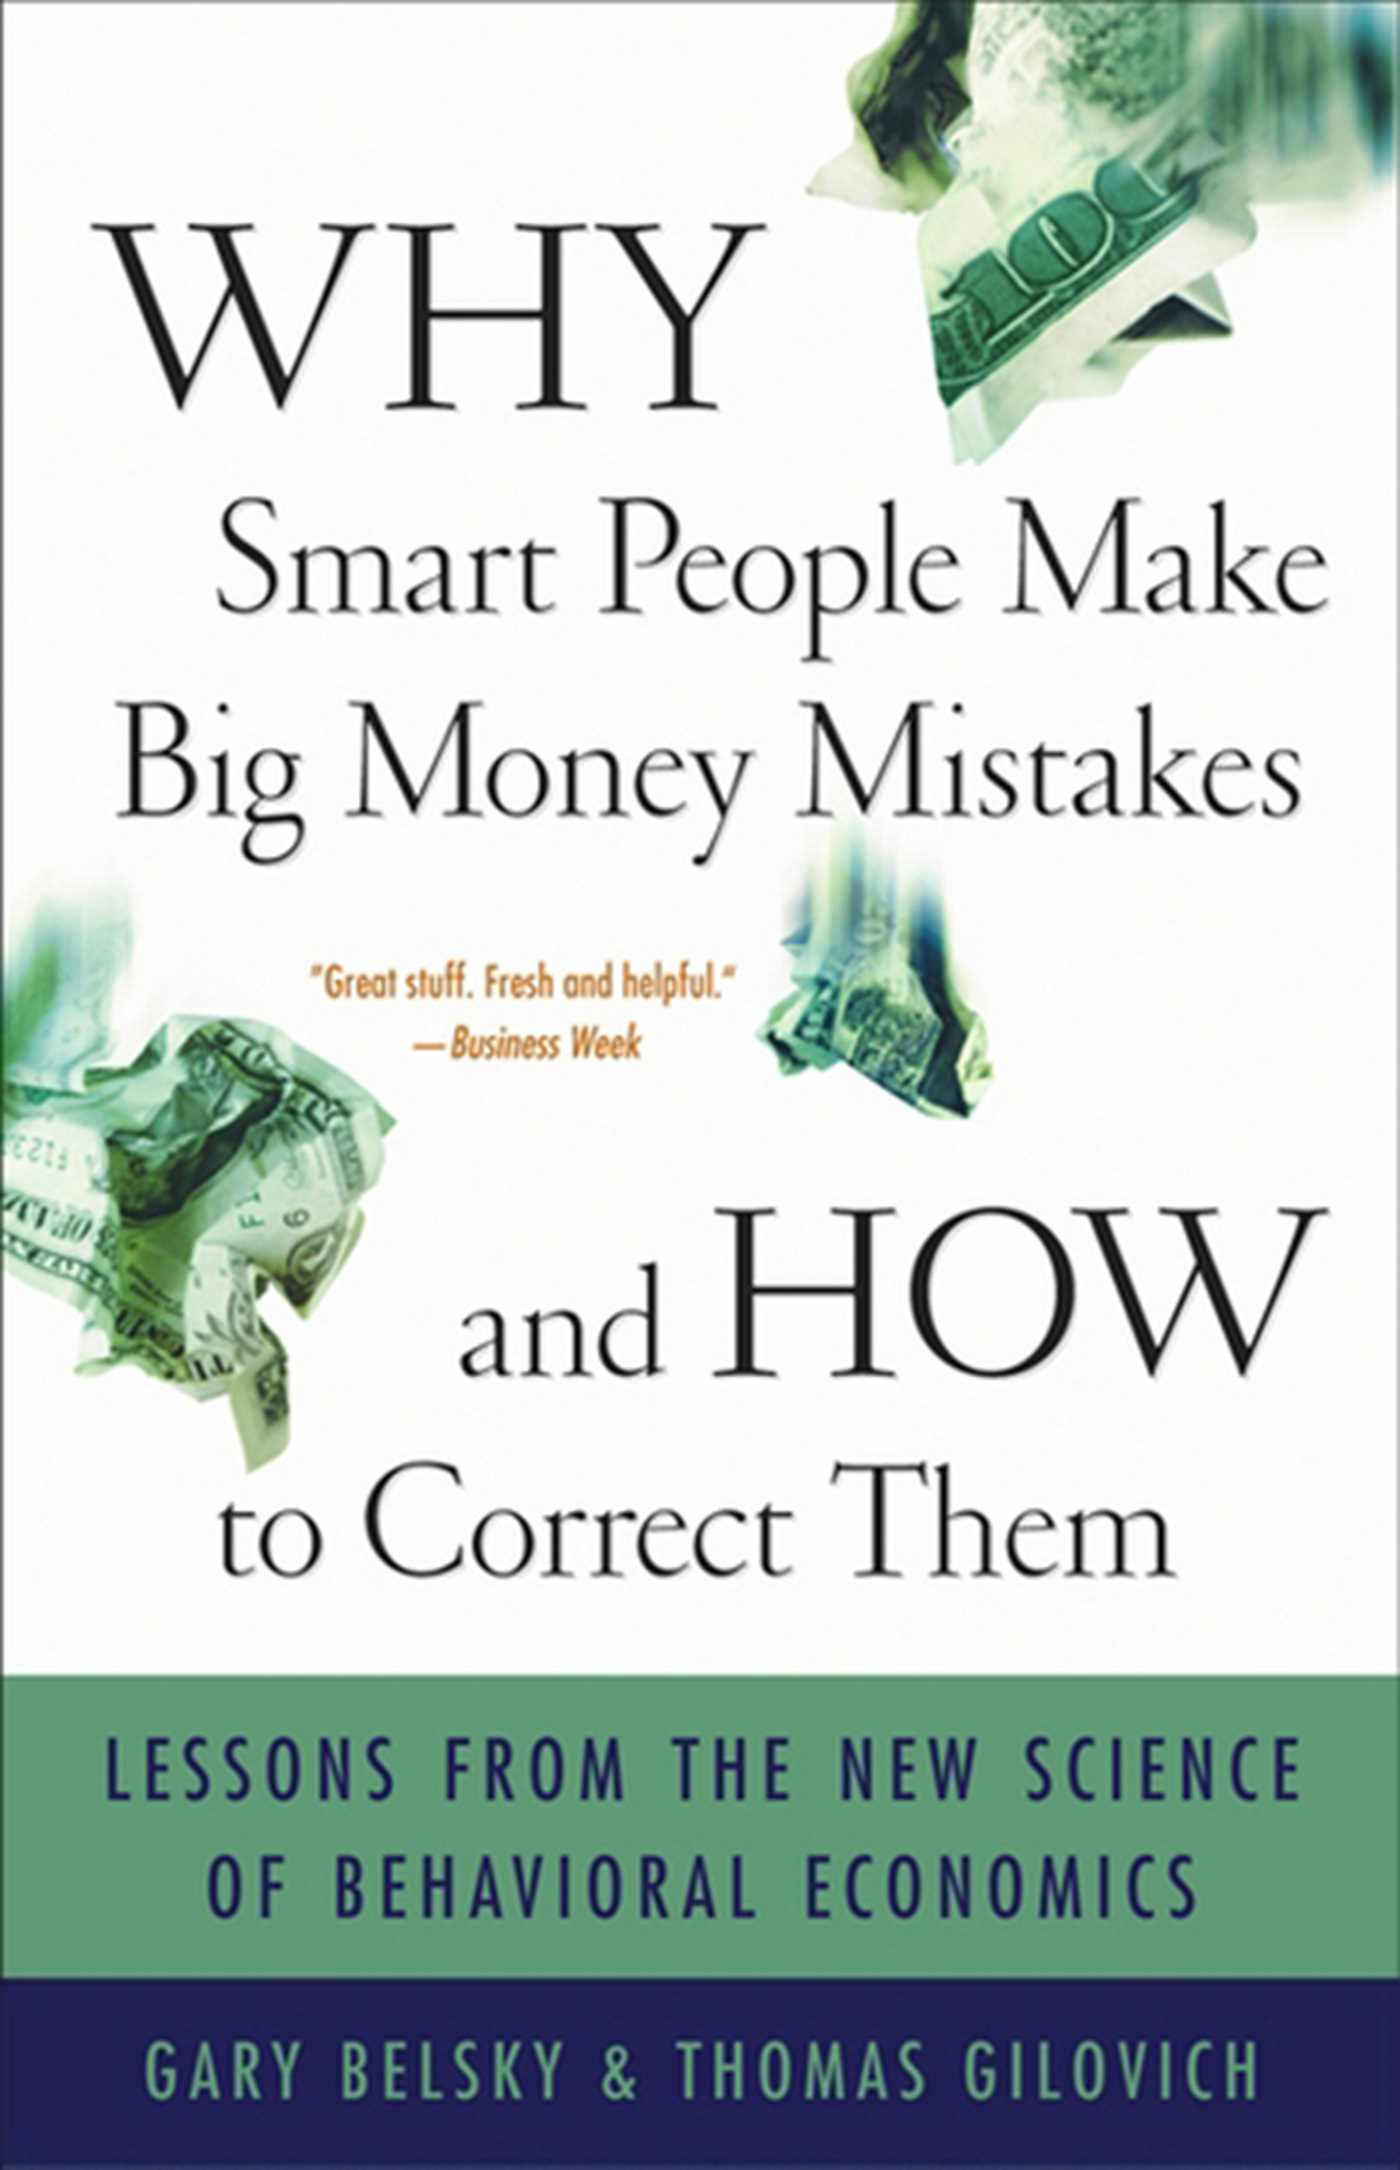 Why smart people make big money mistakes and how to correct them 9781439169742 hr